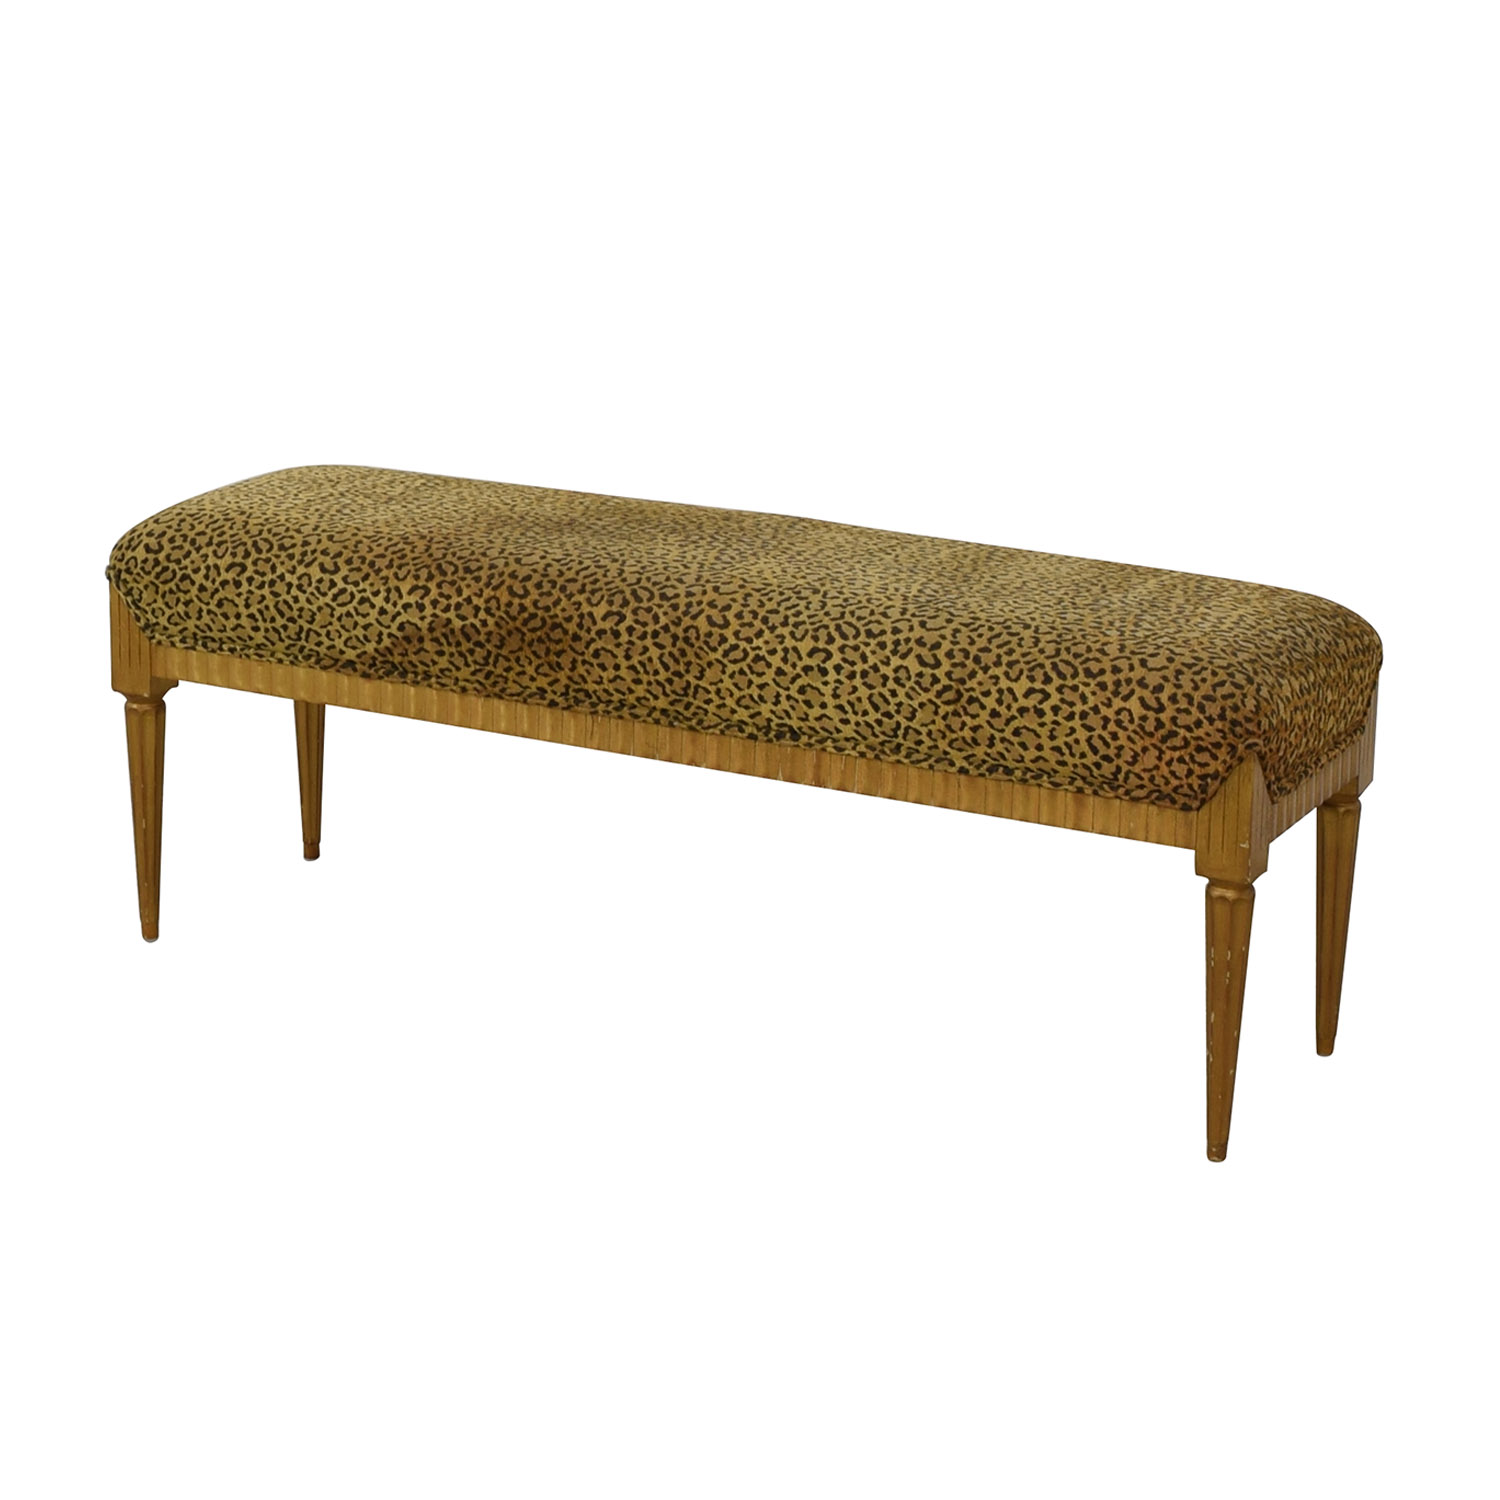 Sensational 71 Off Furniture Masters Furniture Masters Leopard Print Bench Chairs Pabps2019 Chair Design Images Pabps2019Com